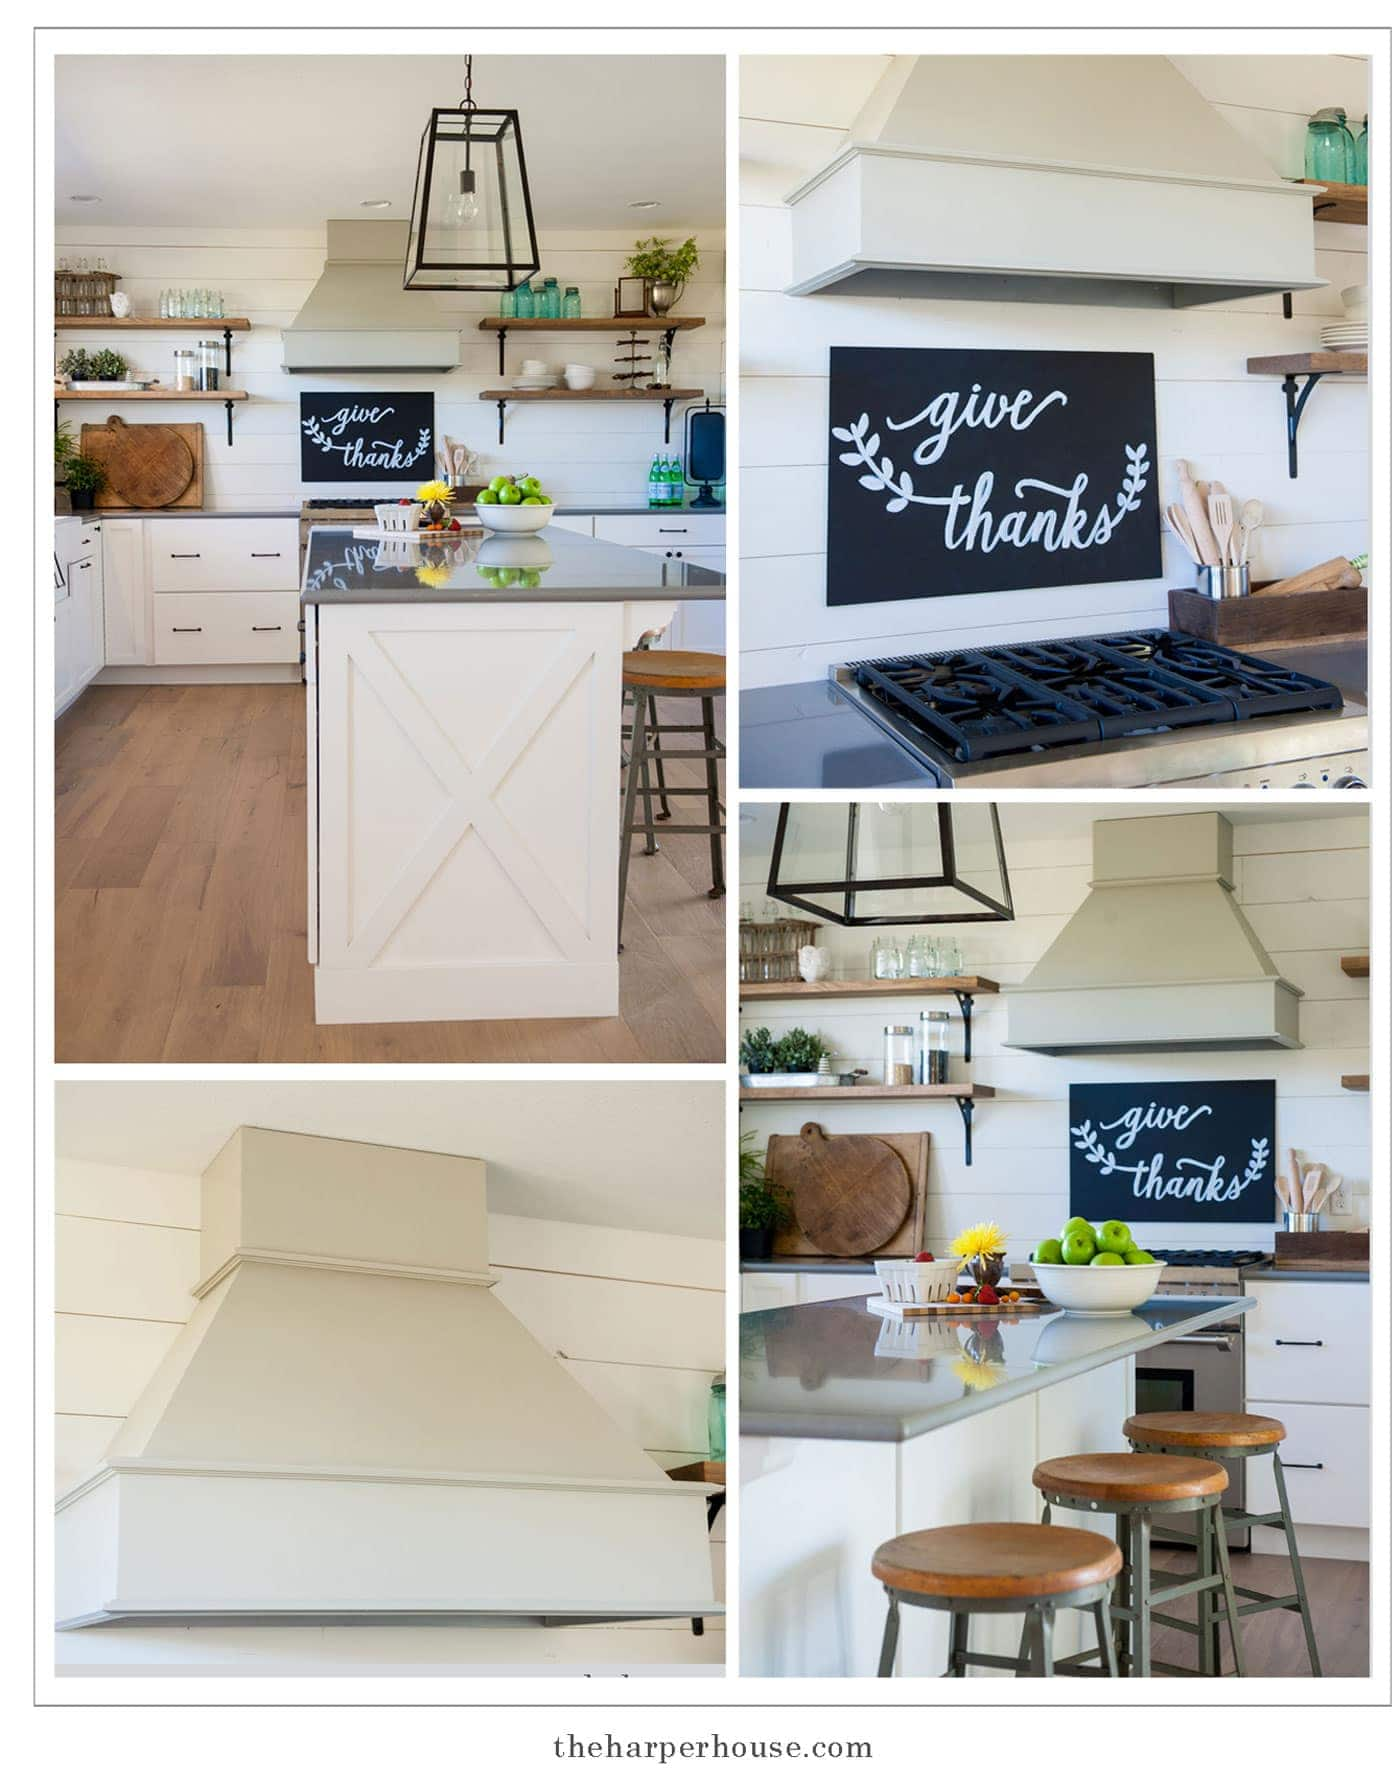 sharing our fixer upper inspired farmhouse kitchen reveal featuring white shaker cabinets, white oak floors, farmhouse sink, open shelves, and industrial lighting, & gray quartz countertops| | theharperhouse.com